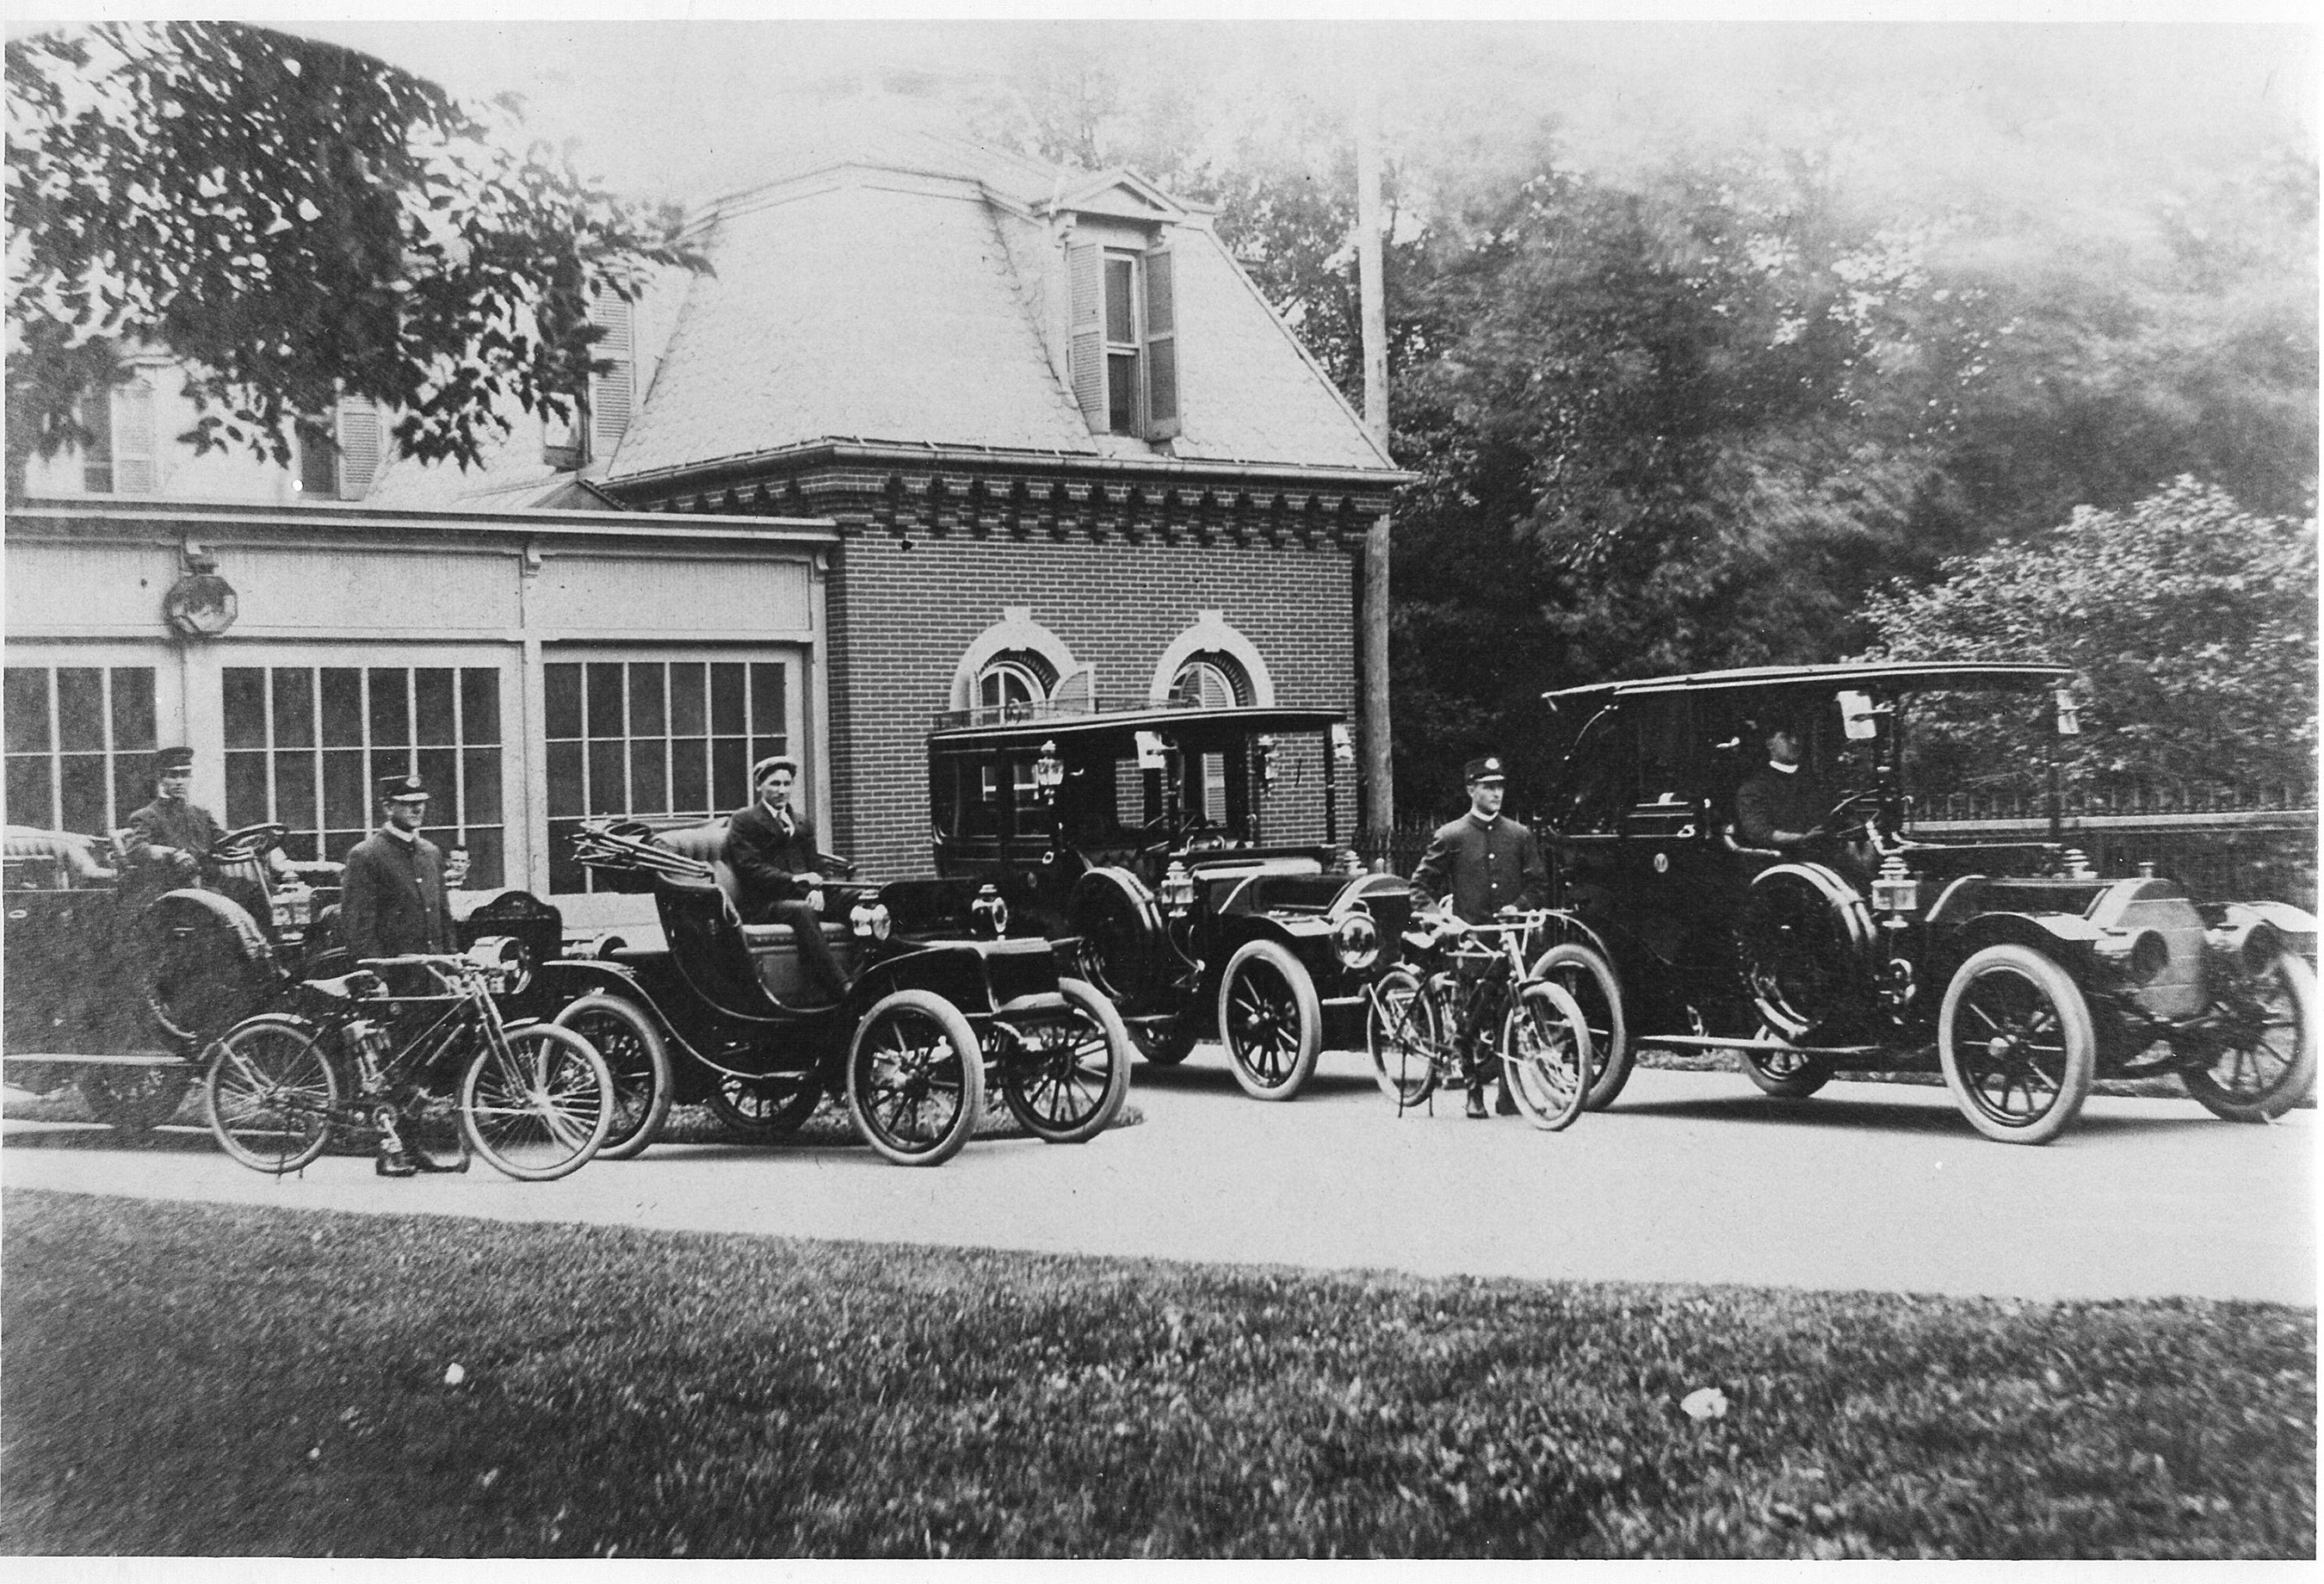 The first ever White House auto fleet consisted of four cars: the White Steam Car, two Pierce-Arrows, and a Baker electric. The cars are pictured here with their chauffeurs in front of the White House stable that was converted into a garage in 1909. (Photo courtesy of the Historic Vehicle Association)